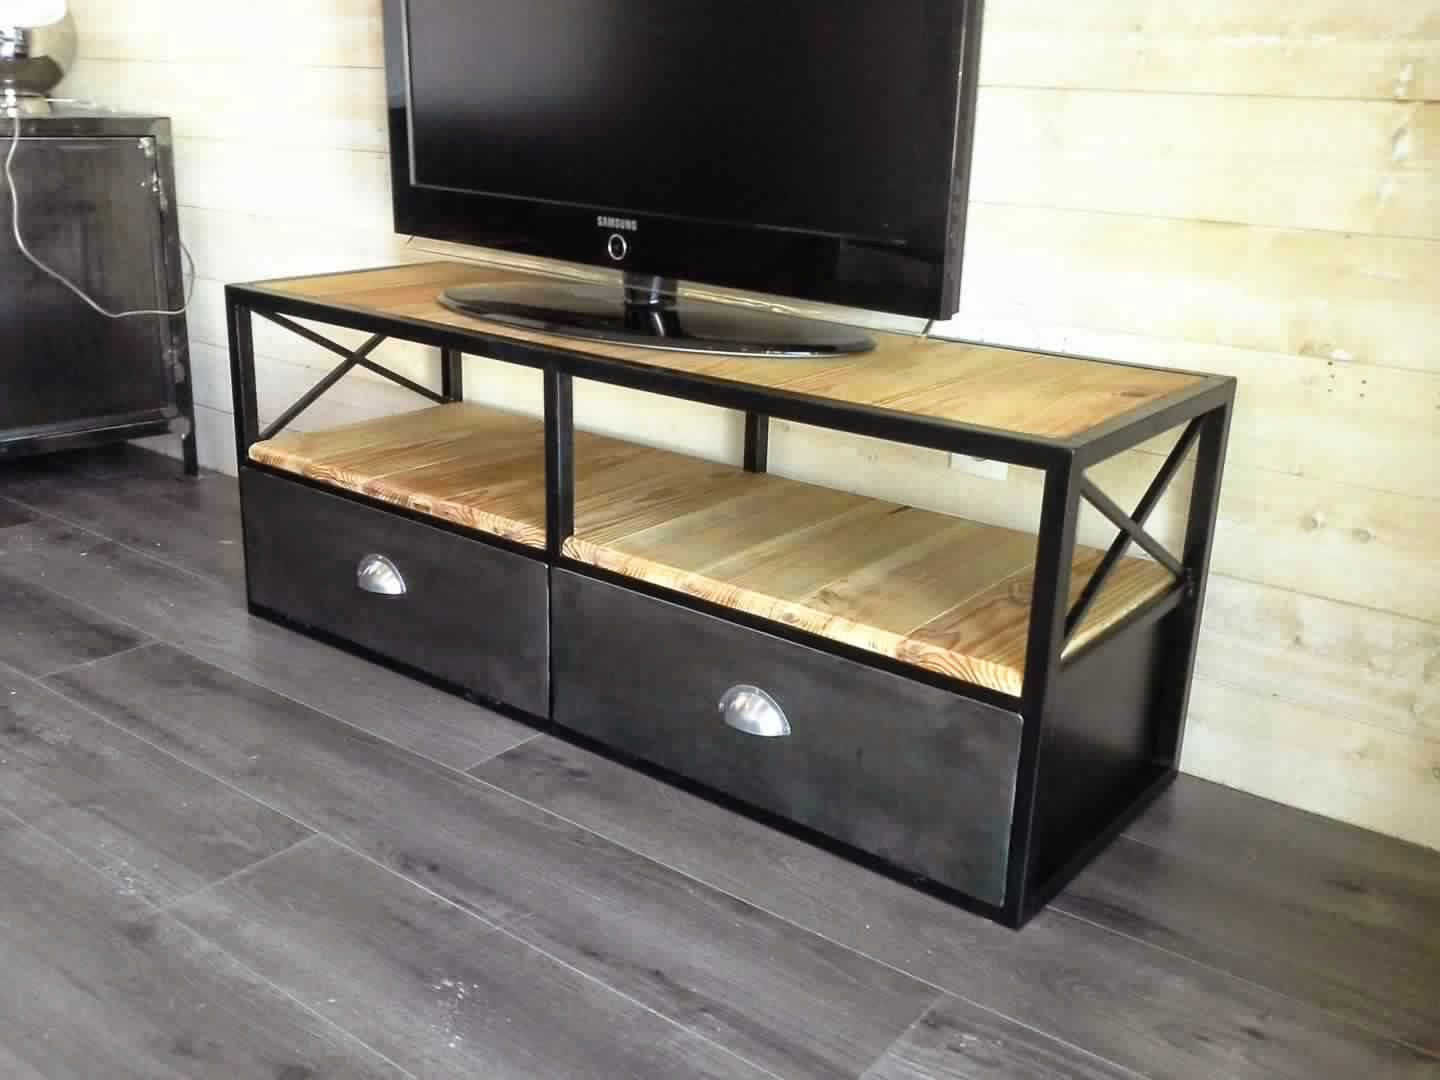 meuble tv industriel meuble d coration maison. Black Bedroom Furniture Sets. Home Design Ideas